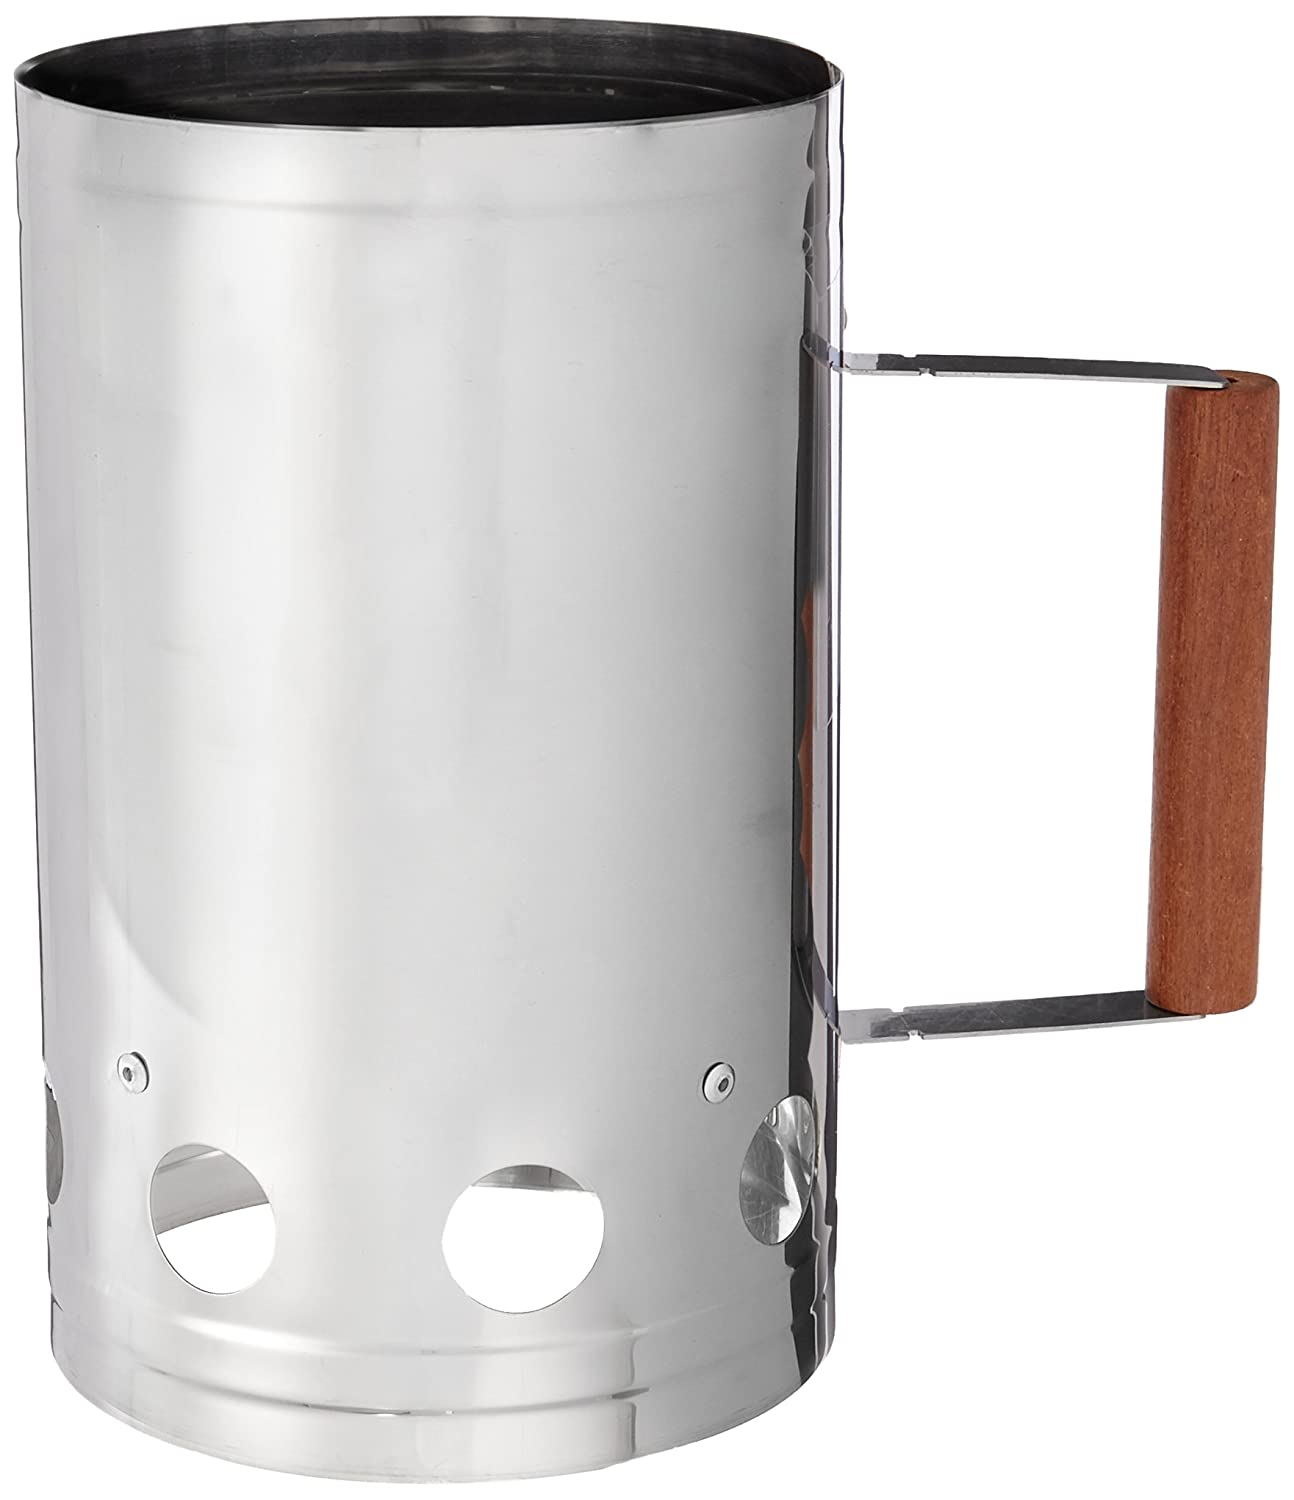 Charcoal Companion Stainless Steel Chimney Charcoal Starter CC3026